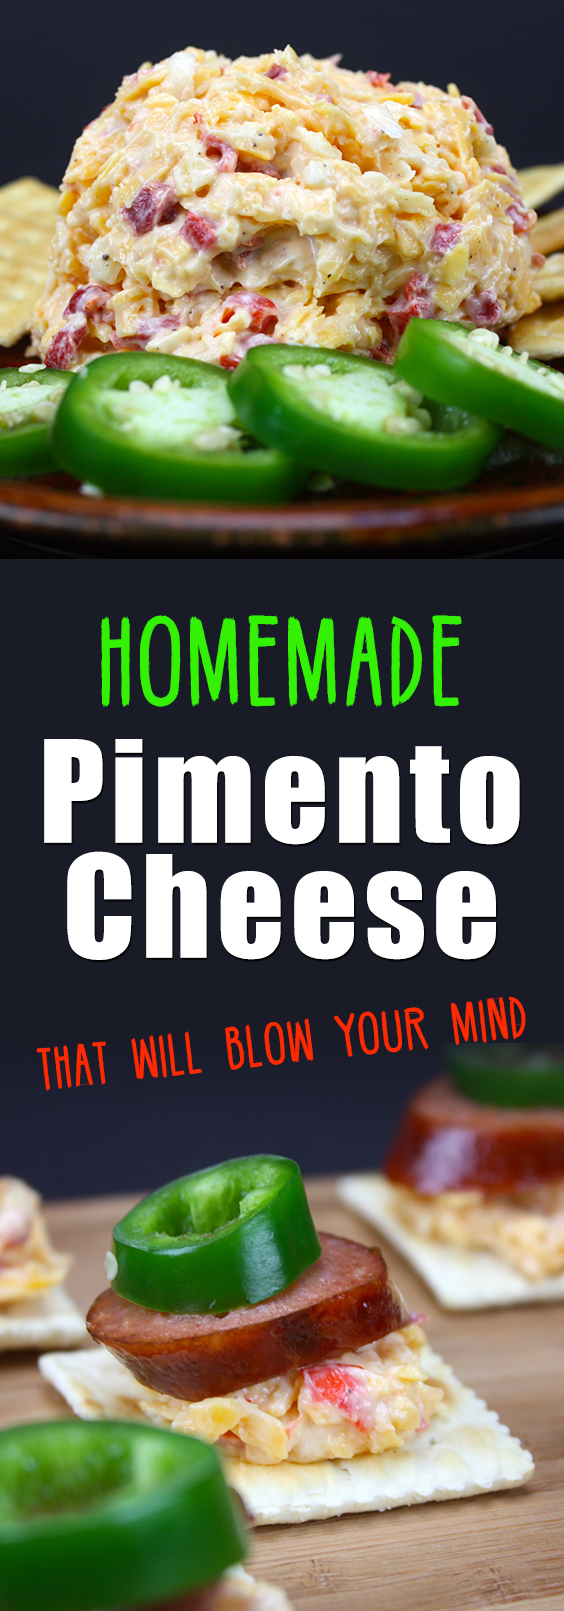 Our favorite way to enjoy this easy homemade pimento cheese is with grilled smoked sausage and a jalapeno on a saltine. Our favorite way to enjoy this easy homemade pimento cheese is with grilled smoked sausage and a jalapeno on a saltine. #recipes #appetizers #cheese